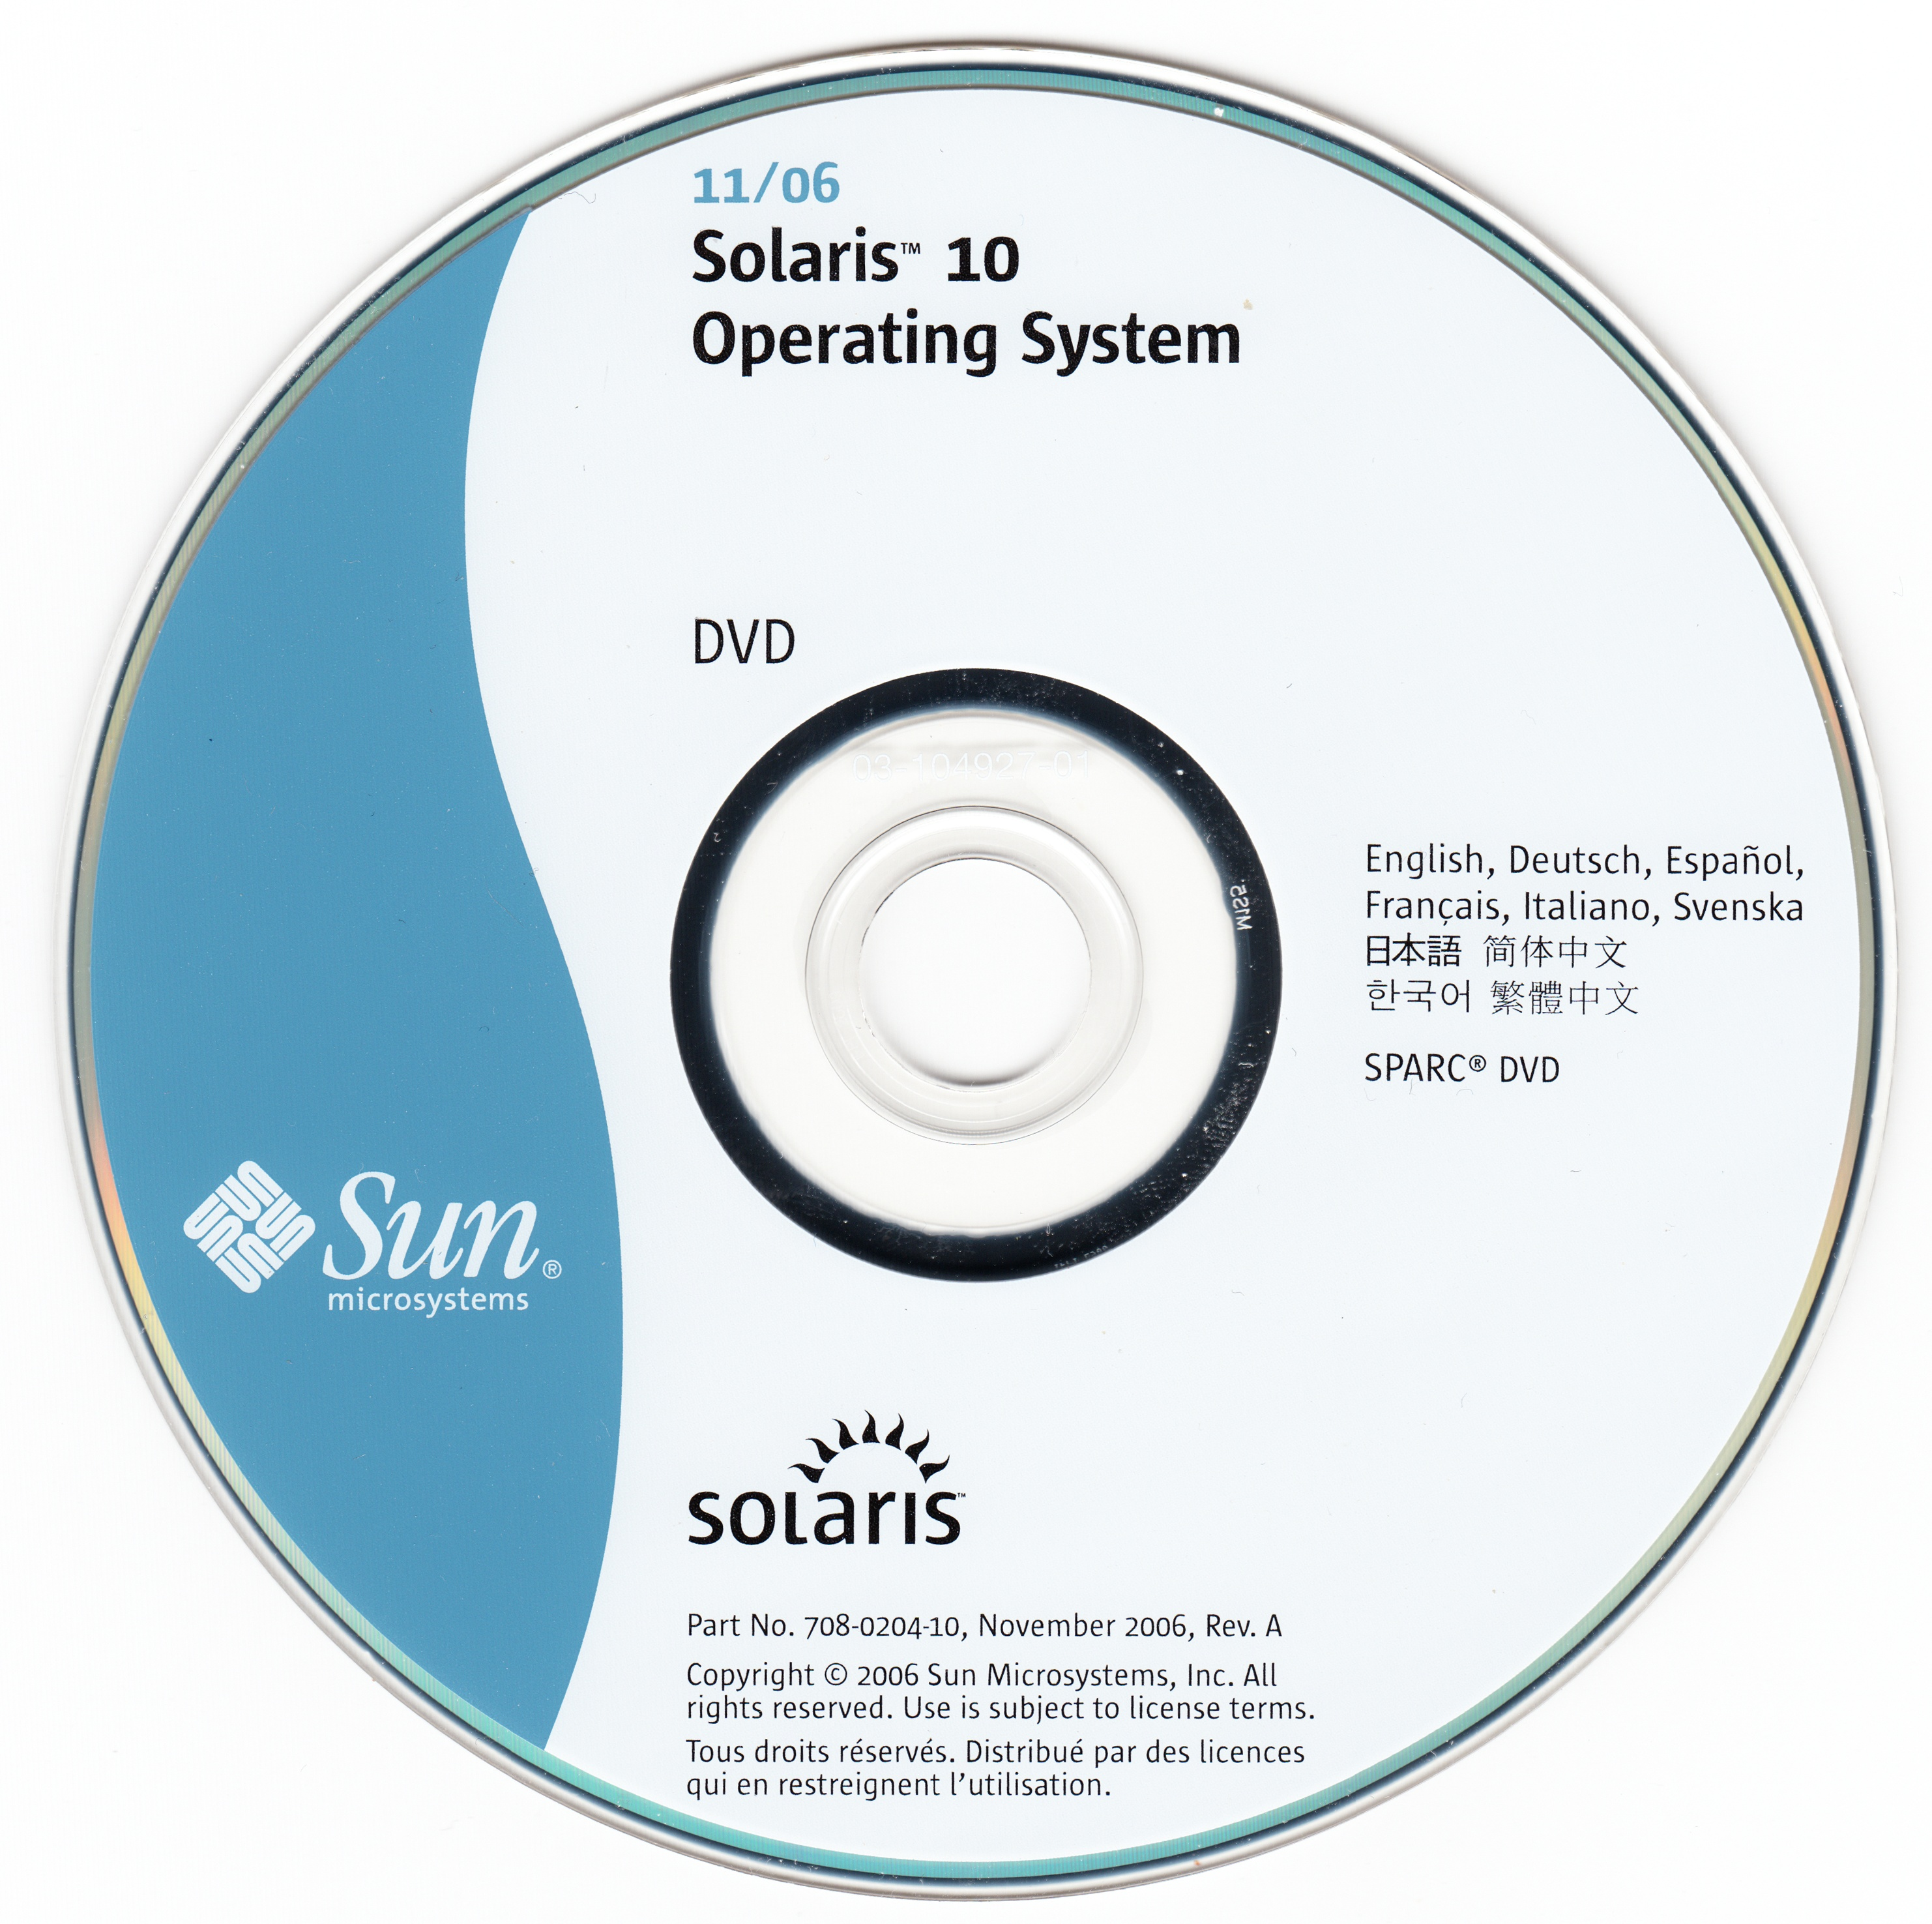 Sun Solaris 10 Operating System 11 06 X86 Sparc Sun Microsystems Free Download Borrow And Streaming Internet Archive